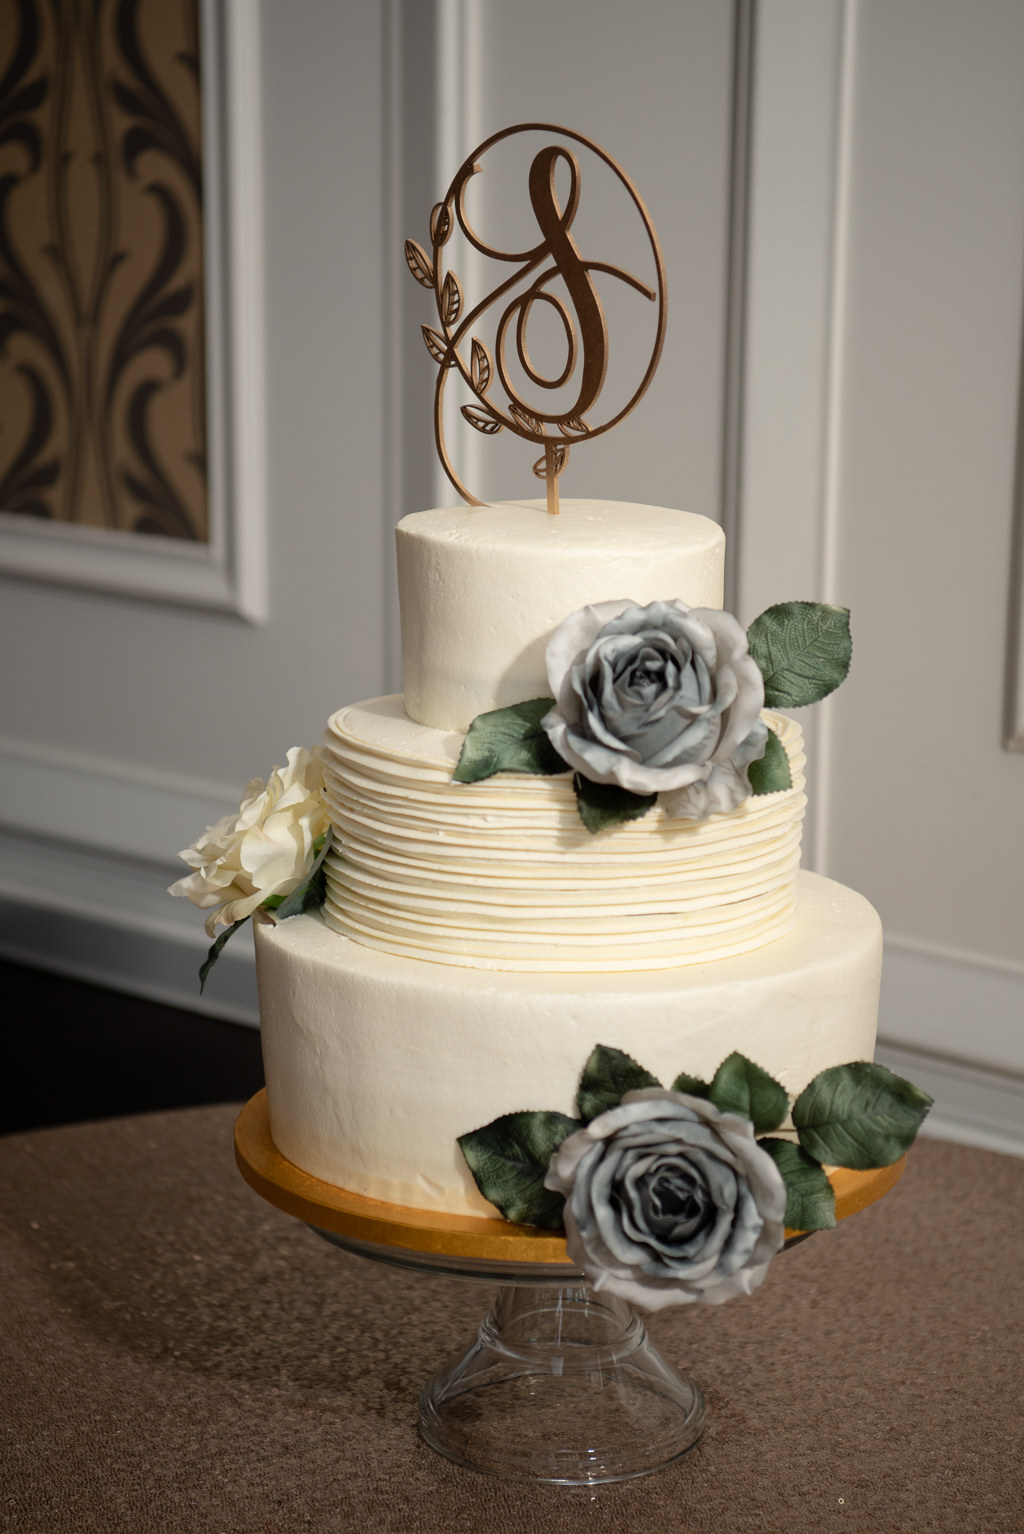 Classic, Elegant Three Tier Ivory Buttercream Wedding Cake with Textured Frosting, Dusty Blue Decorative Florals, Gold Custom Monogram Cake Topper